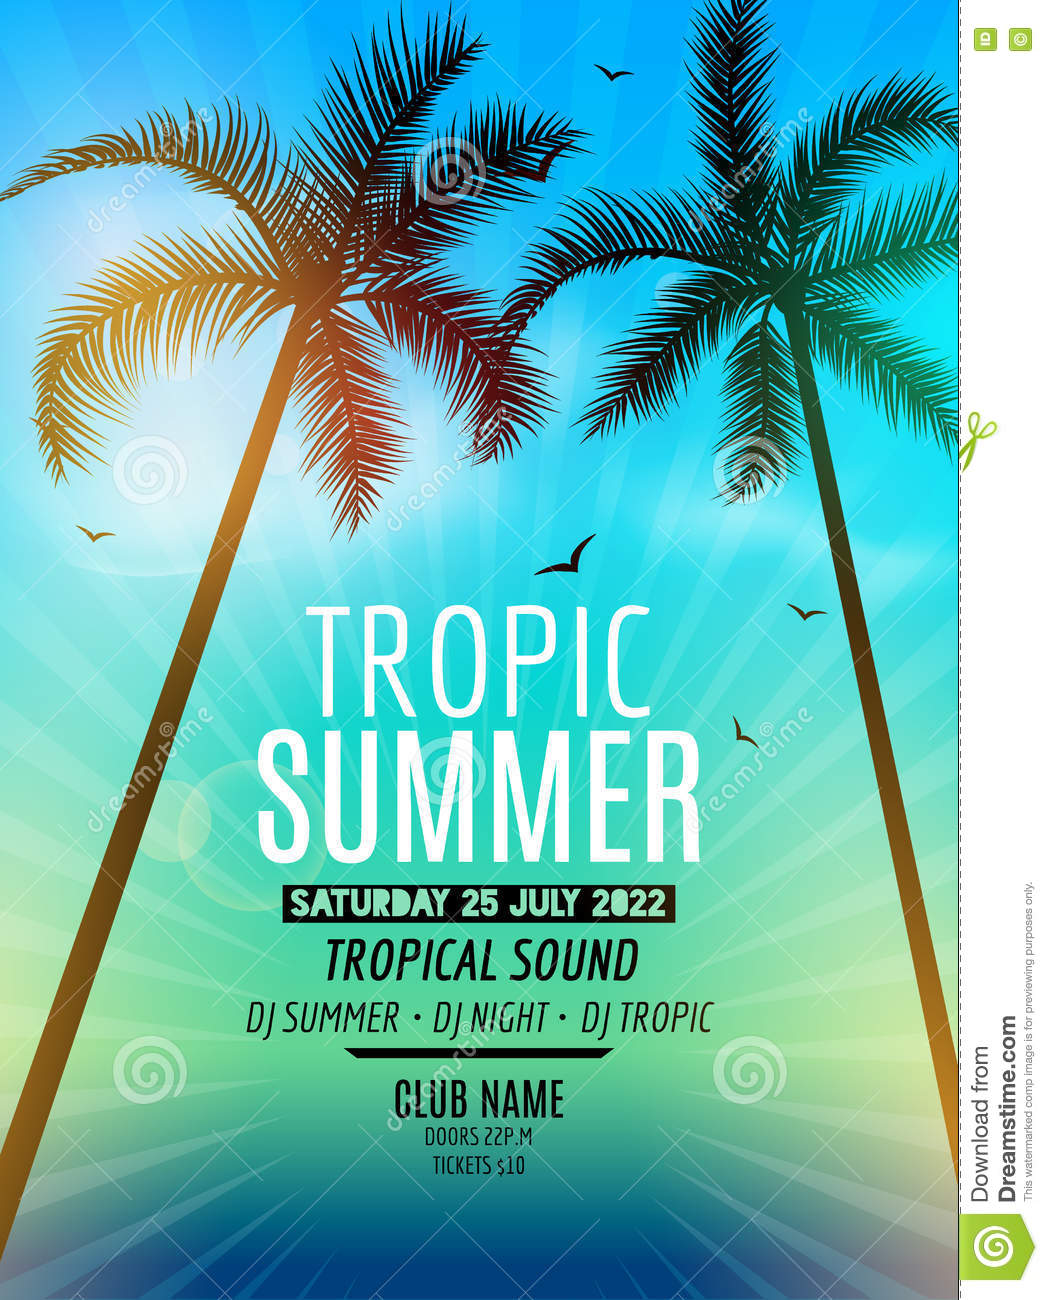 Tropic Summer Beach Party Tropic Summer Vacation And Travel Tropical Poster Colorful Background And Palm Exotic Island Illustration 72486827 Megapixl